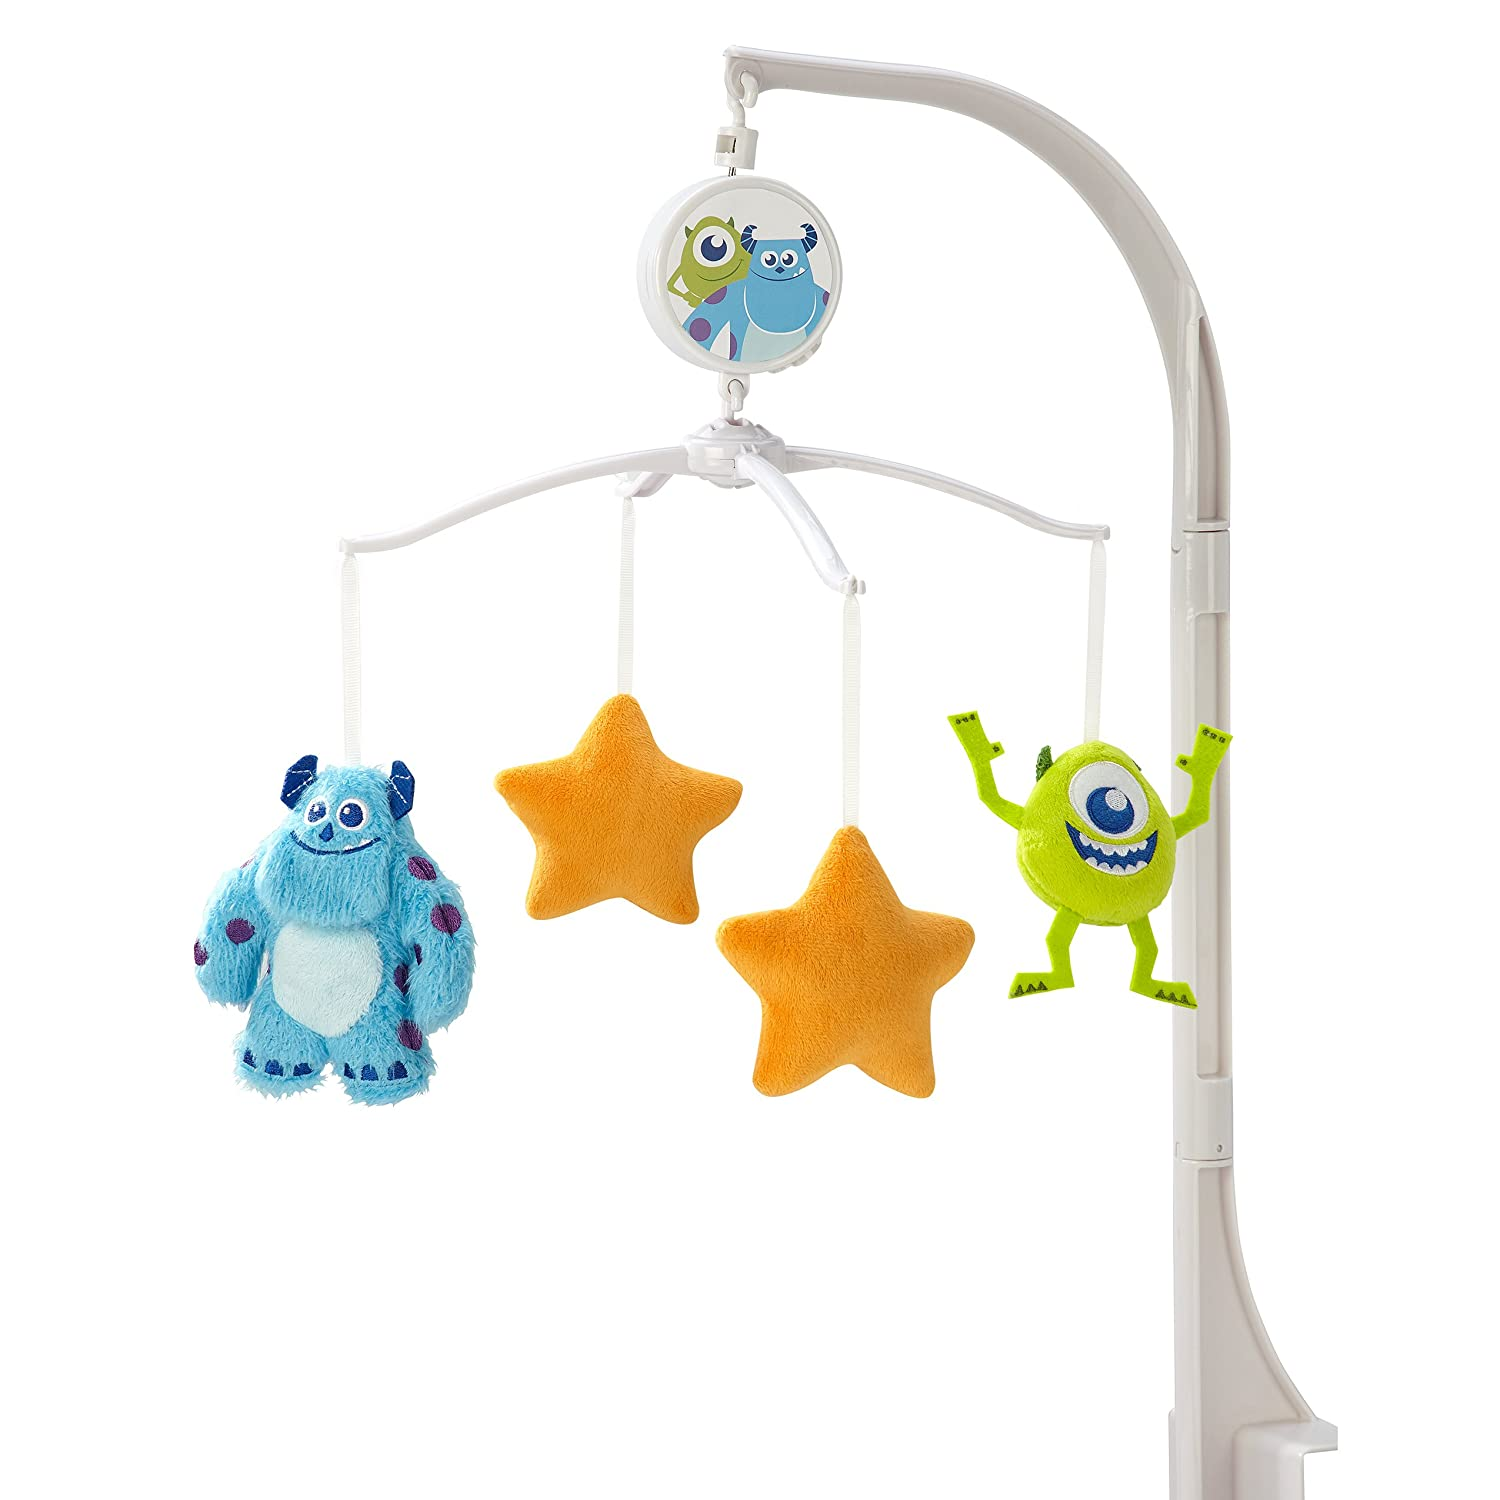 Disney Monsters Musical Mobile, Blue/Orange/Green